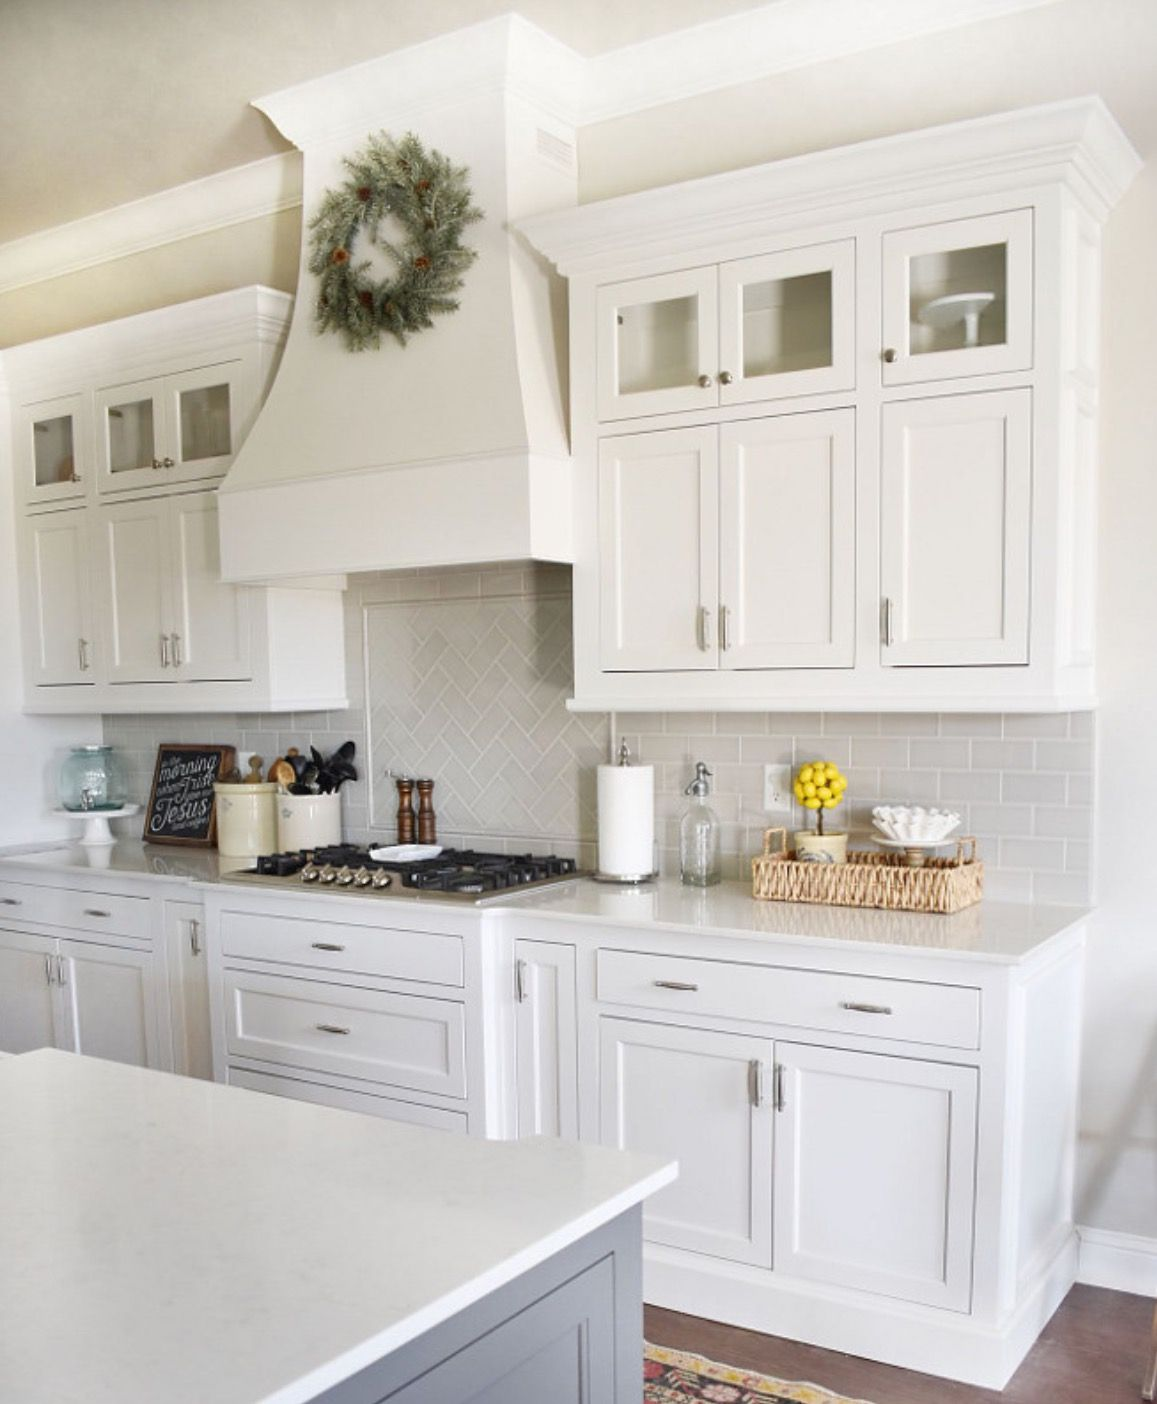 White kitchen with glass inserts in upper